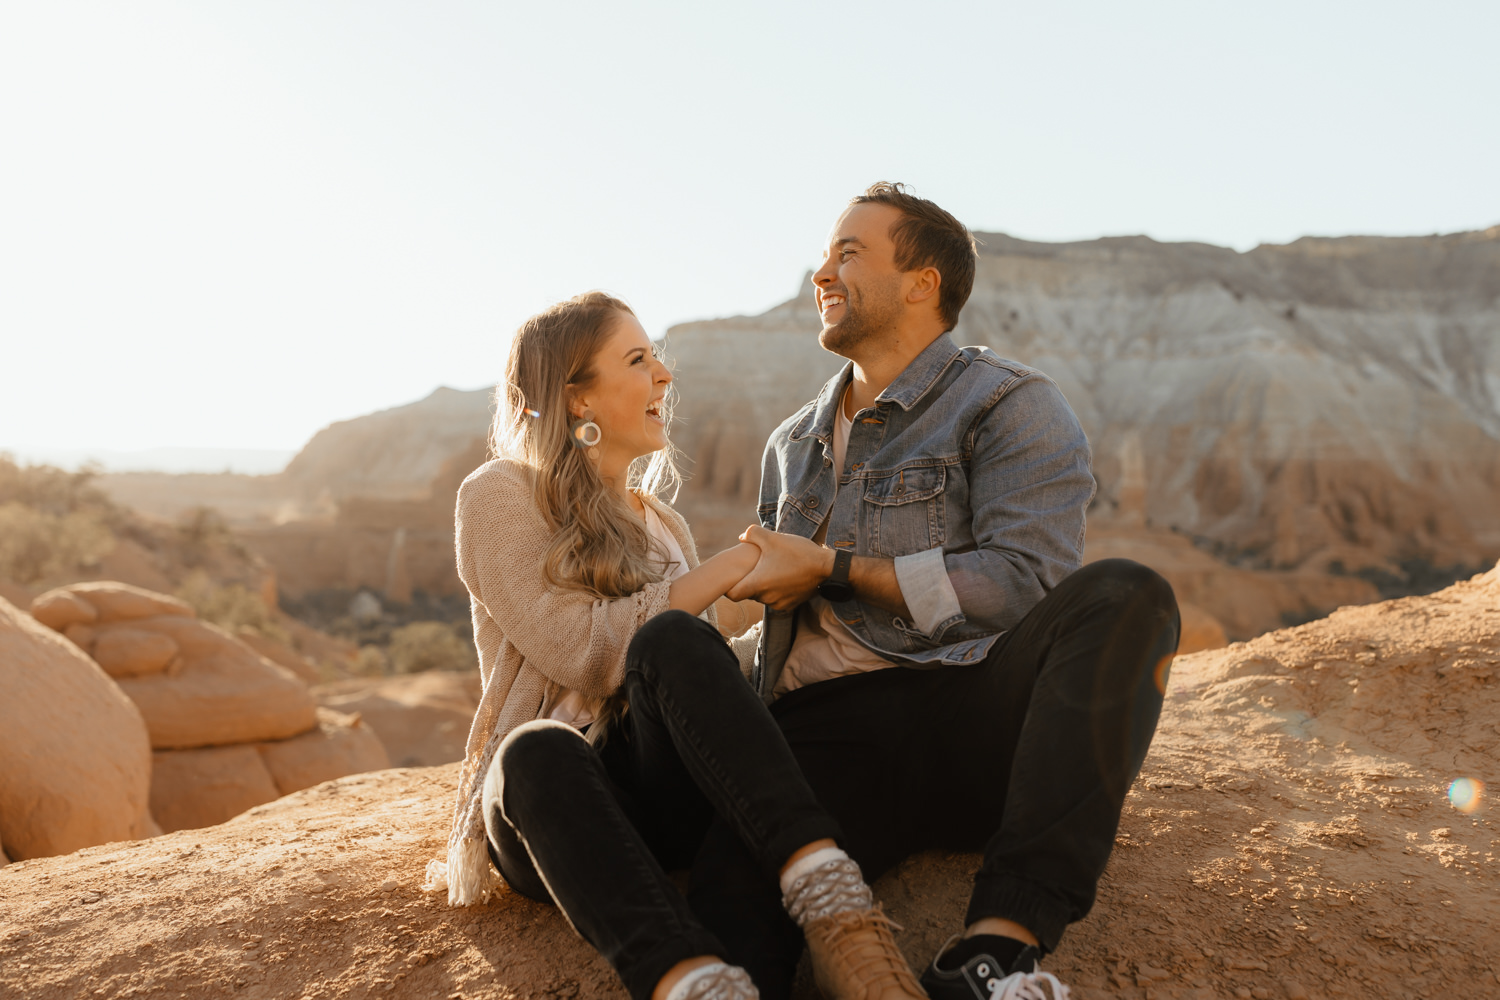 Desert Sunset Couple Session at Bryce Canyon National Park in Southern Utah